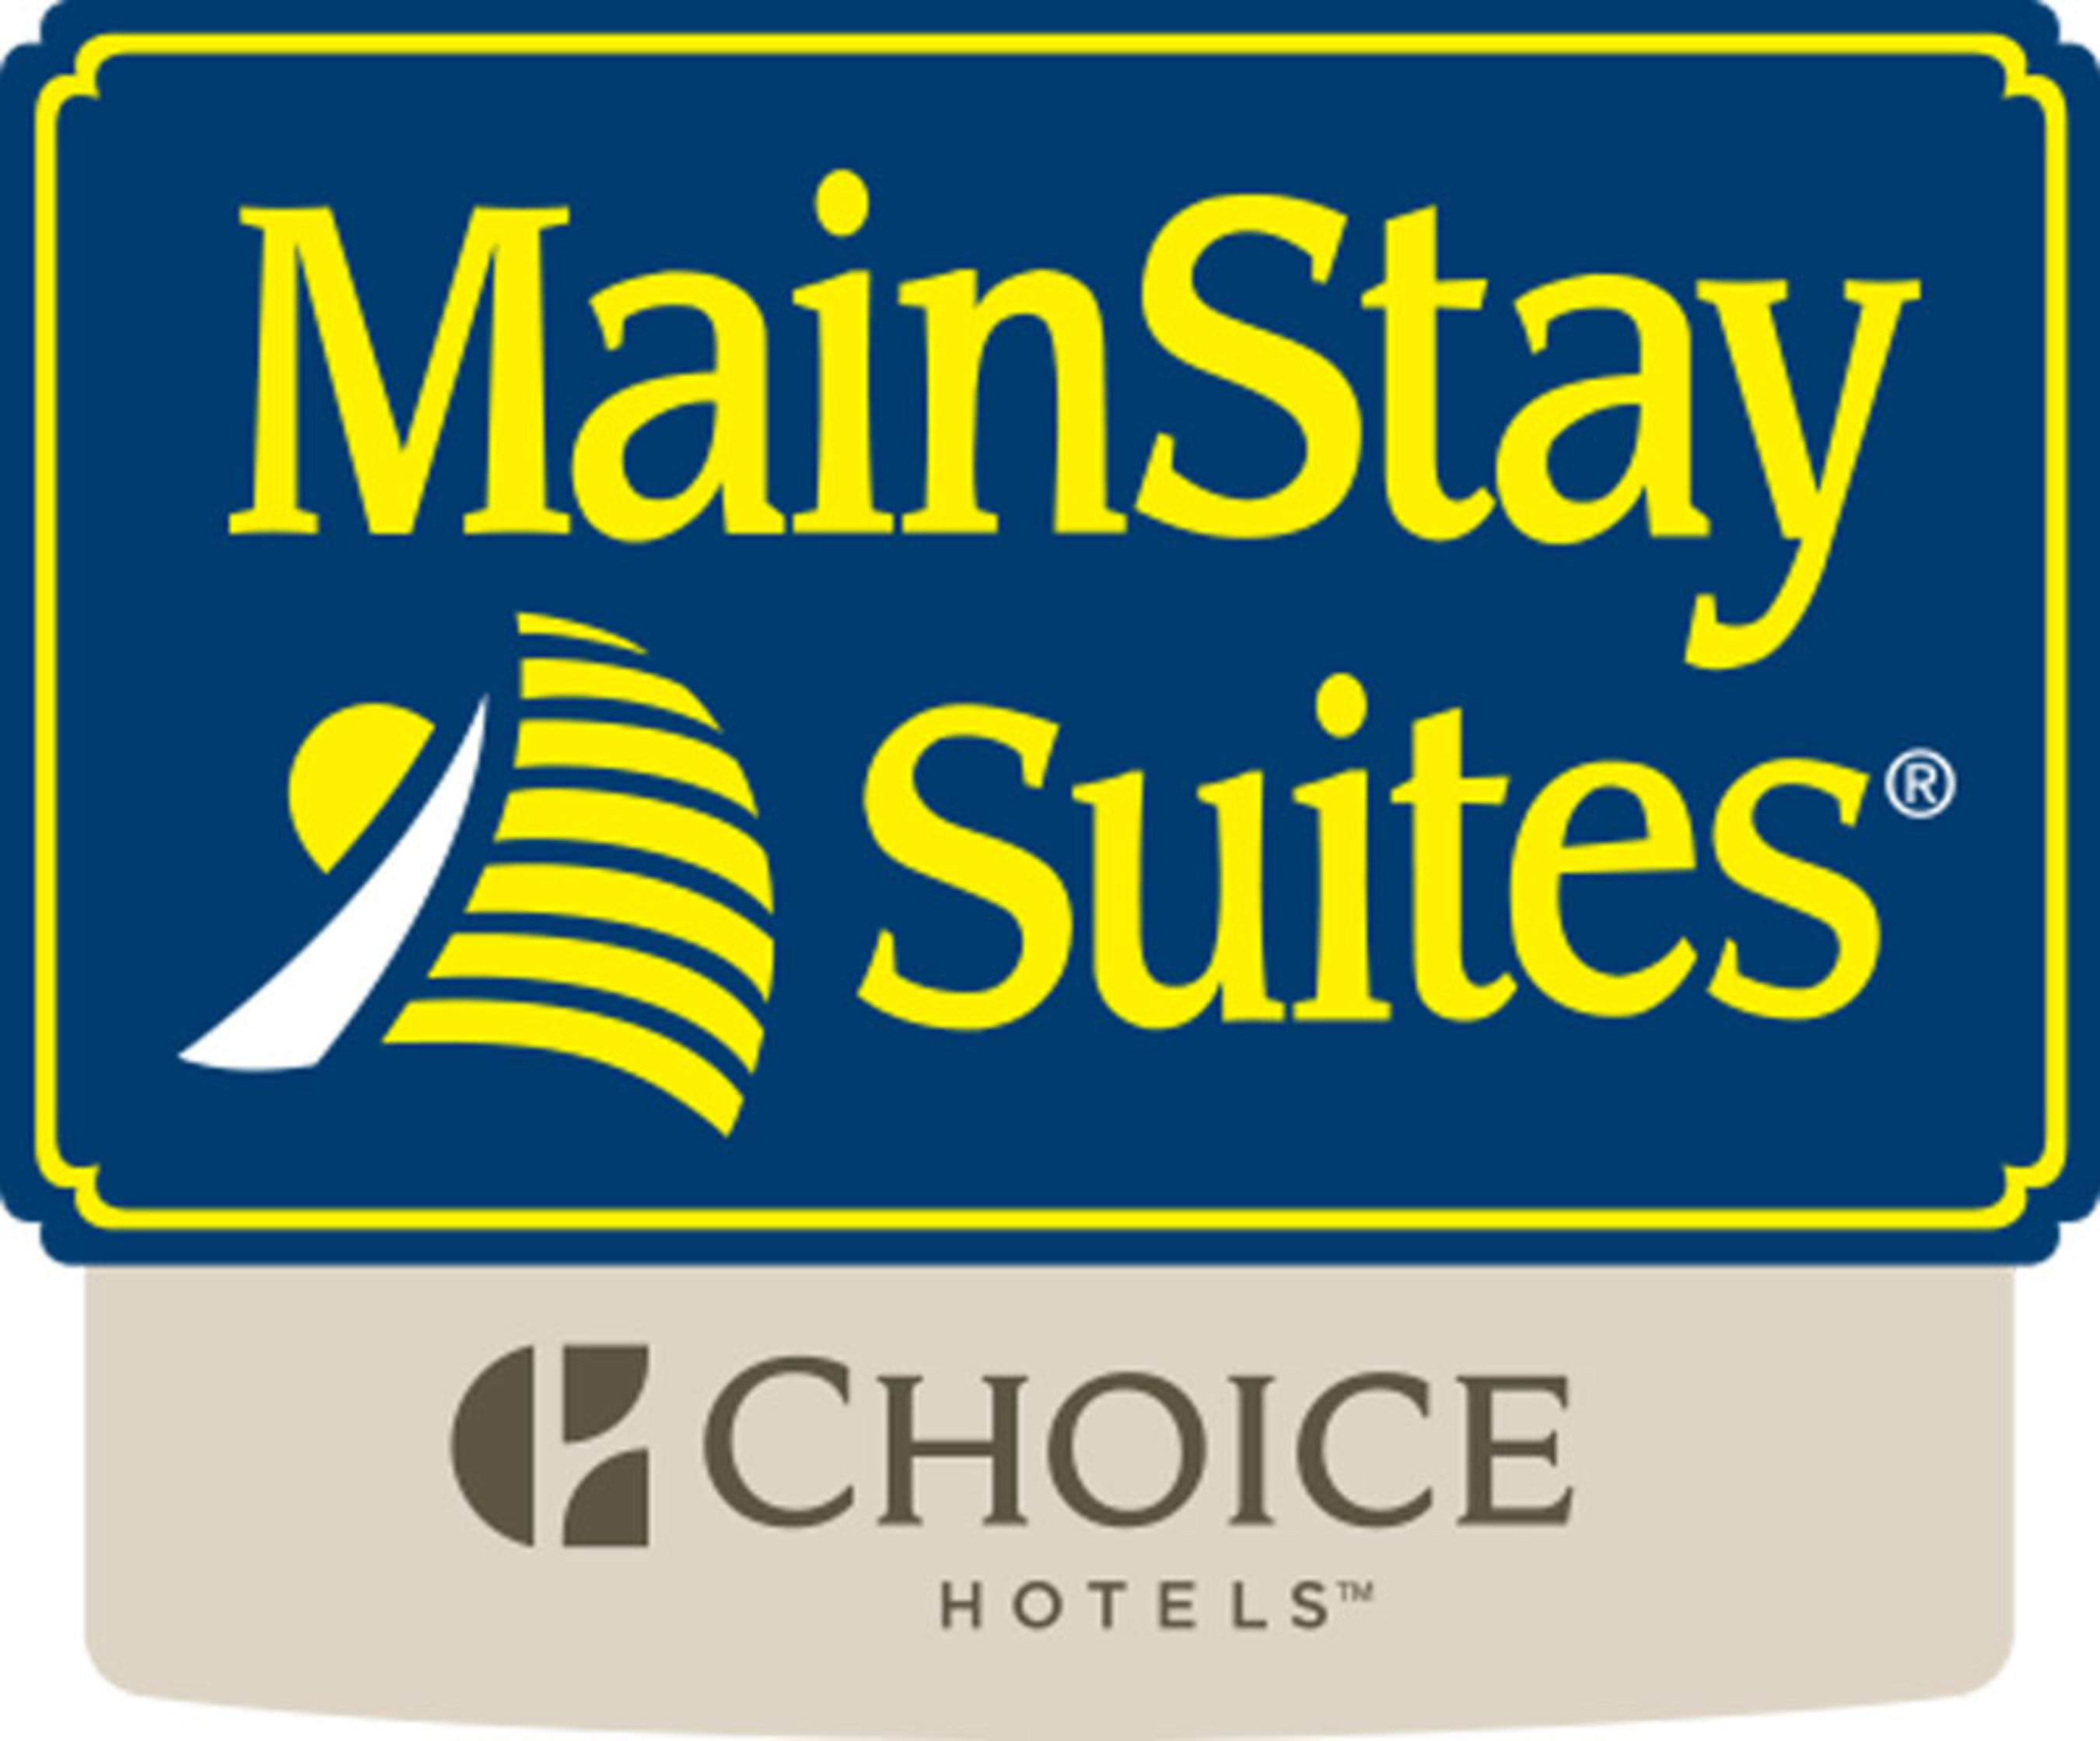 MainStay Suites.